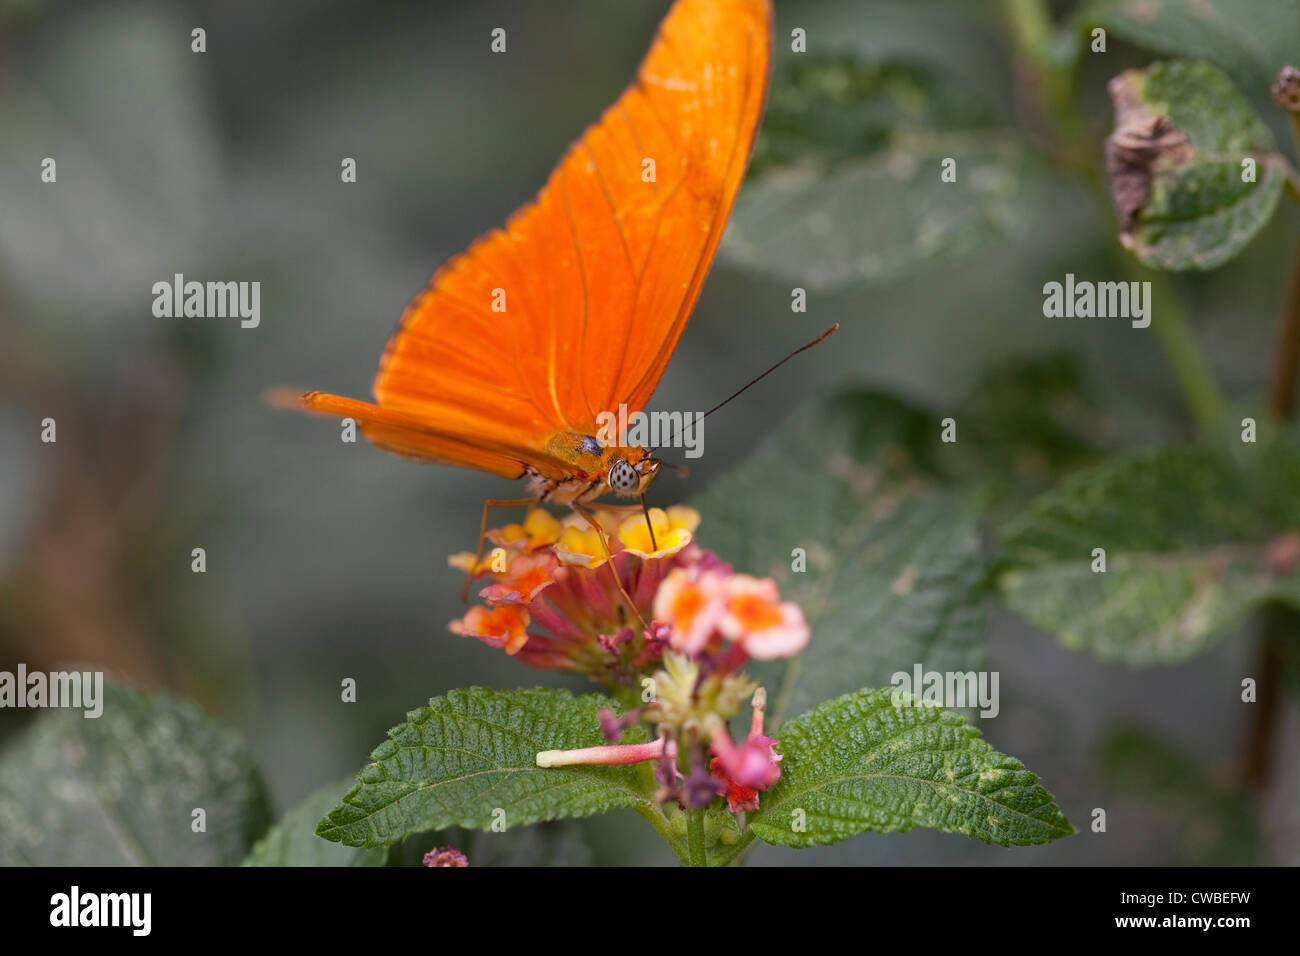 Julia Heliconia butterfly (Dryas iulia) extracting nectar from a flower at The Butterfly Farm, Costa Rica. - Stock Image